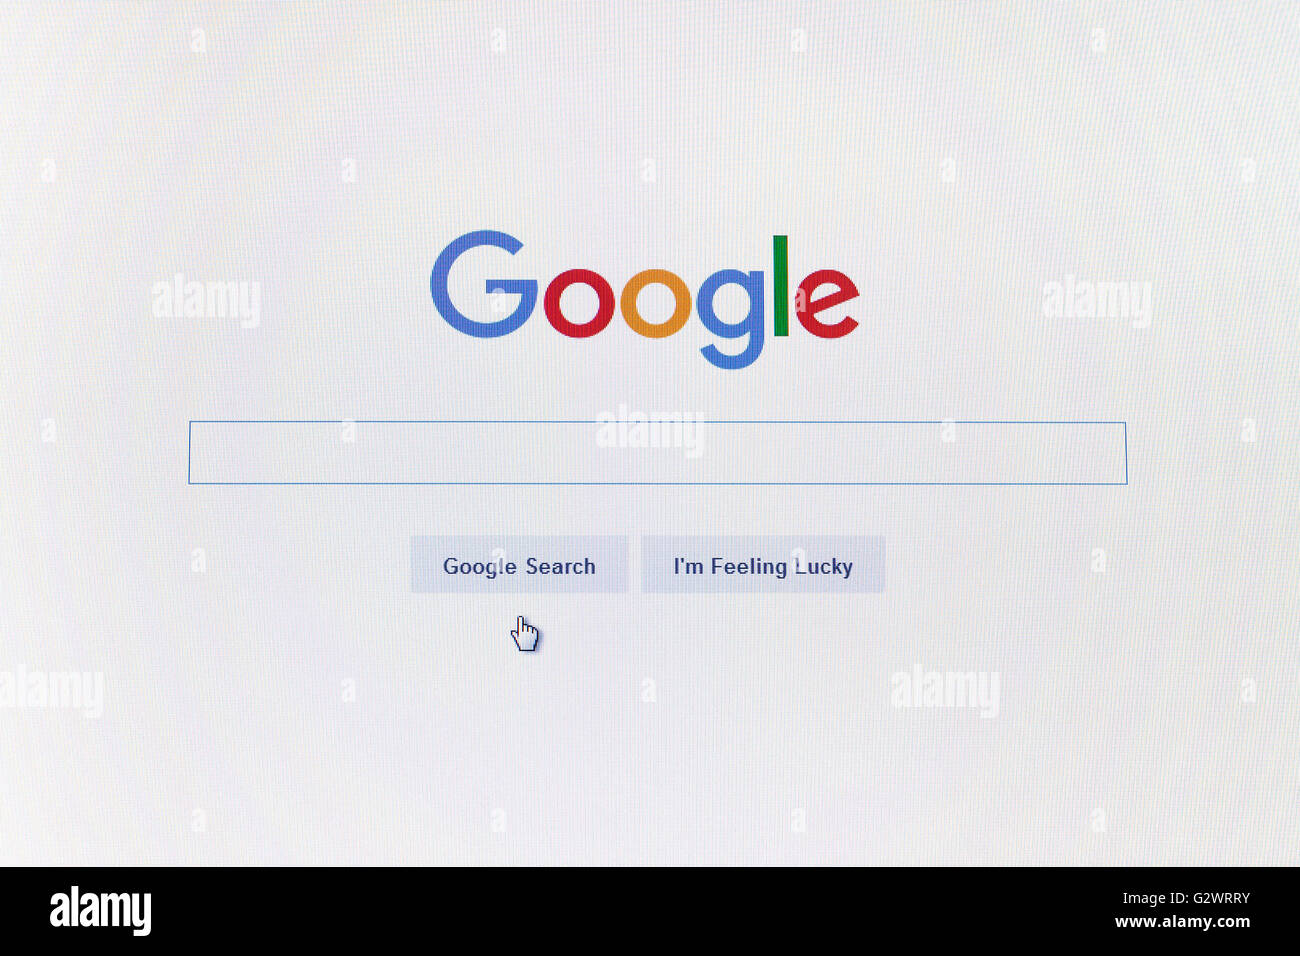 GDANSK, POLAND - MAY 14, 2016. Google.com homepage and cursor on the computer screen. Editorial use only - Stock Image